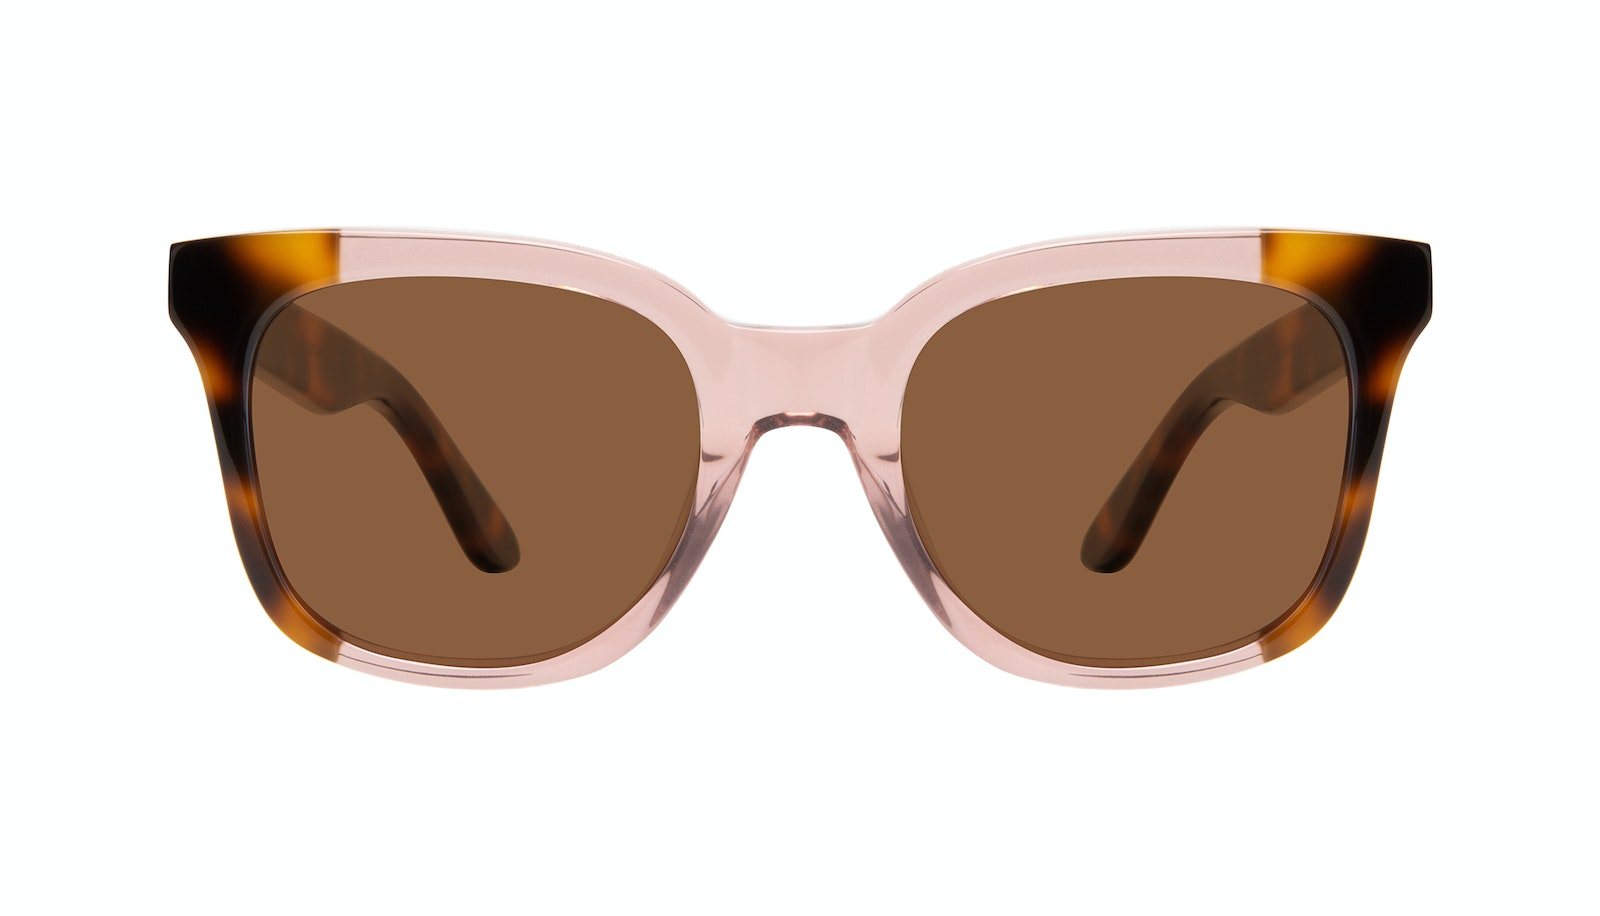 Affordable Fashion Glasses Square Sunglasses Women Mighty Rose Tort